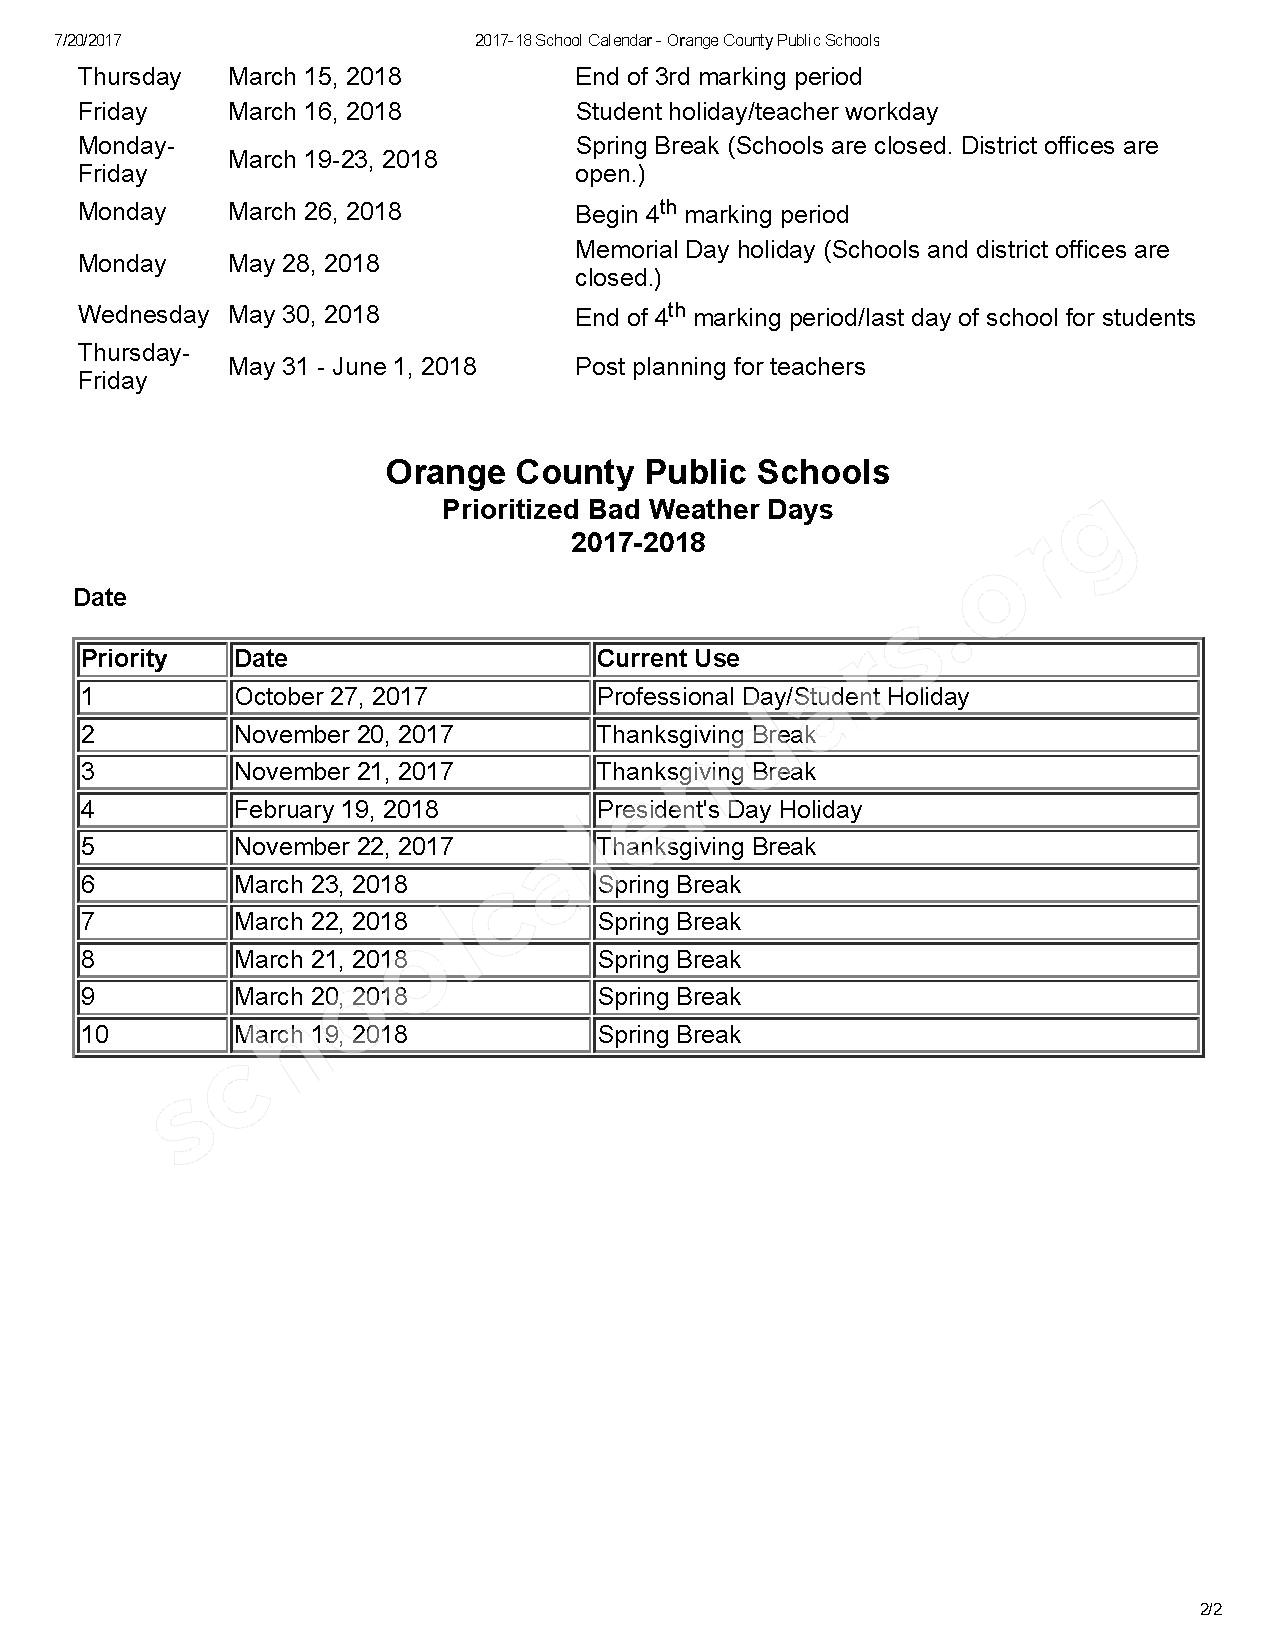 2017 - 2018 OCPS Calendar – Winter Park Tech – page 2